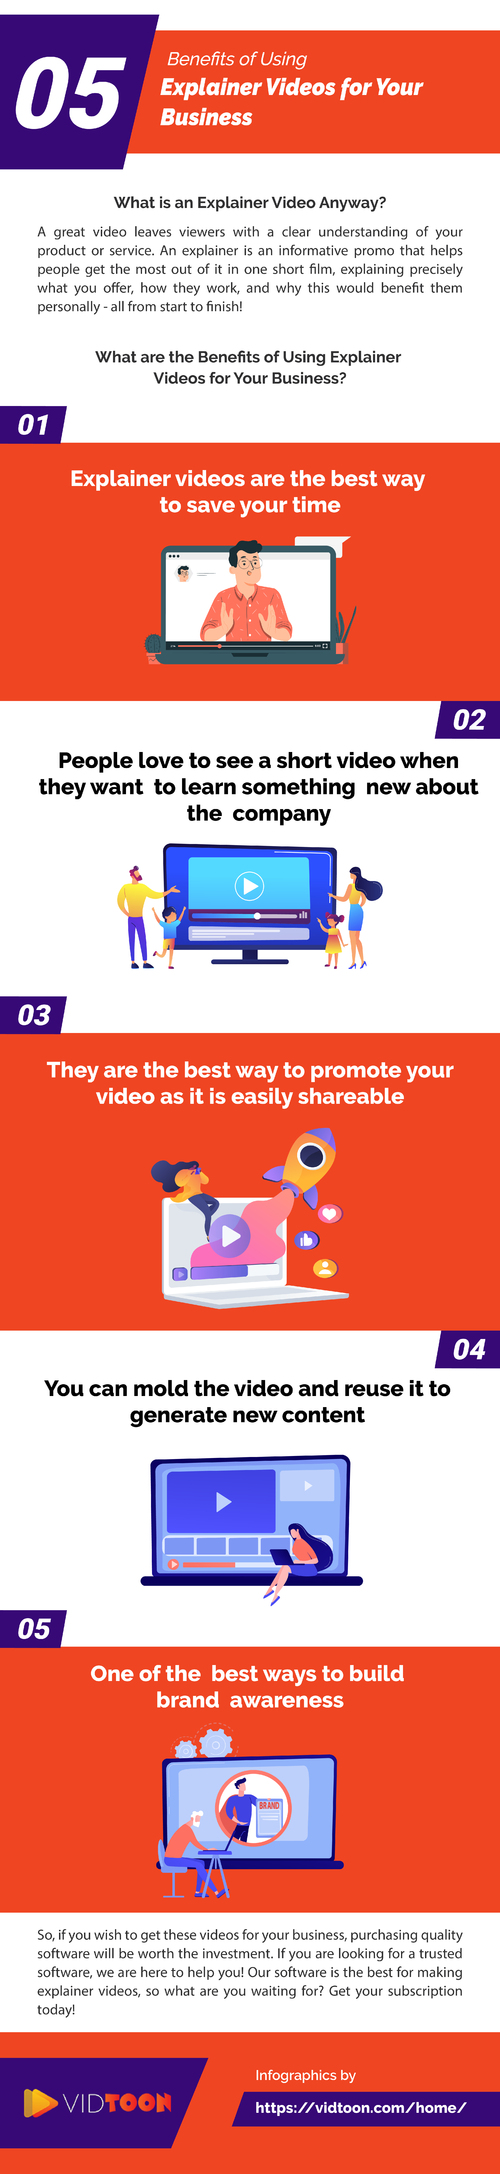 Benefits of Using Explainer Videos for Your Business via Vidtoon